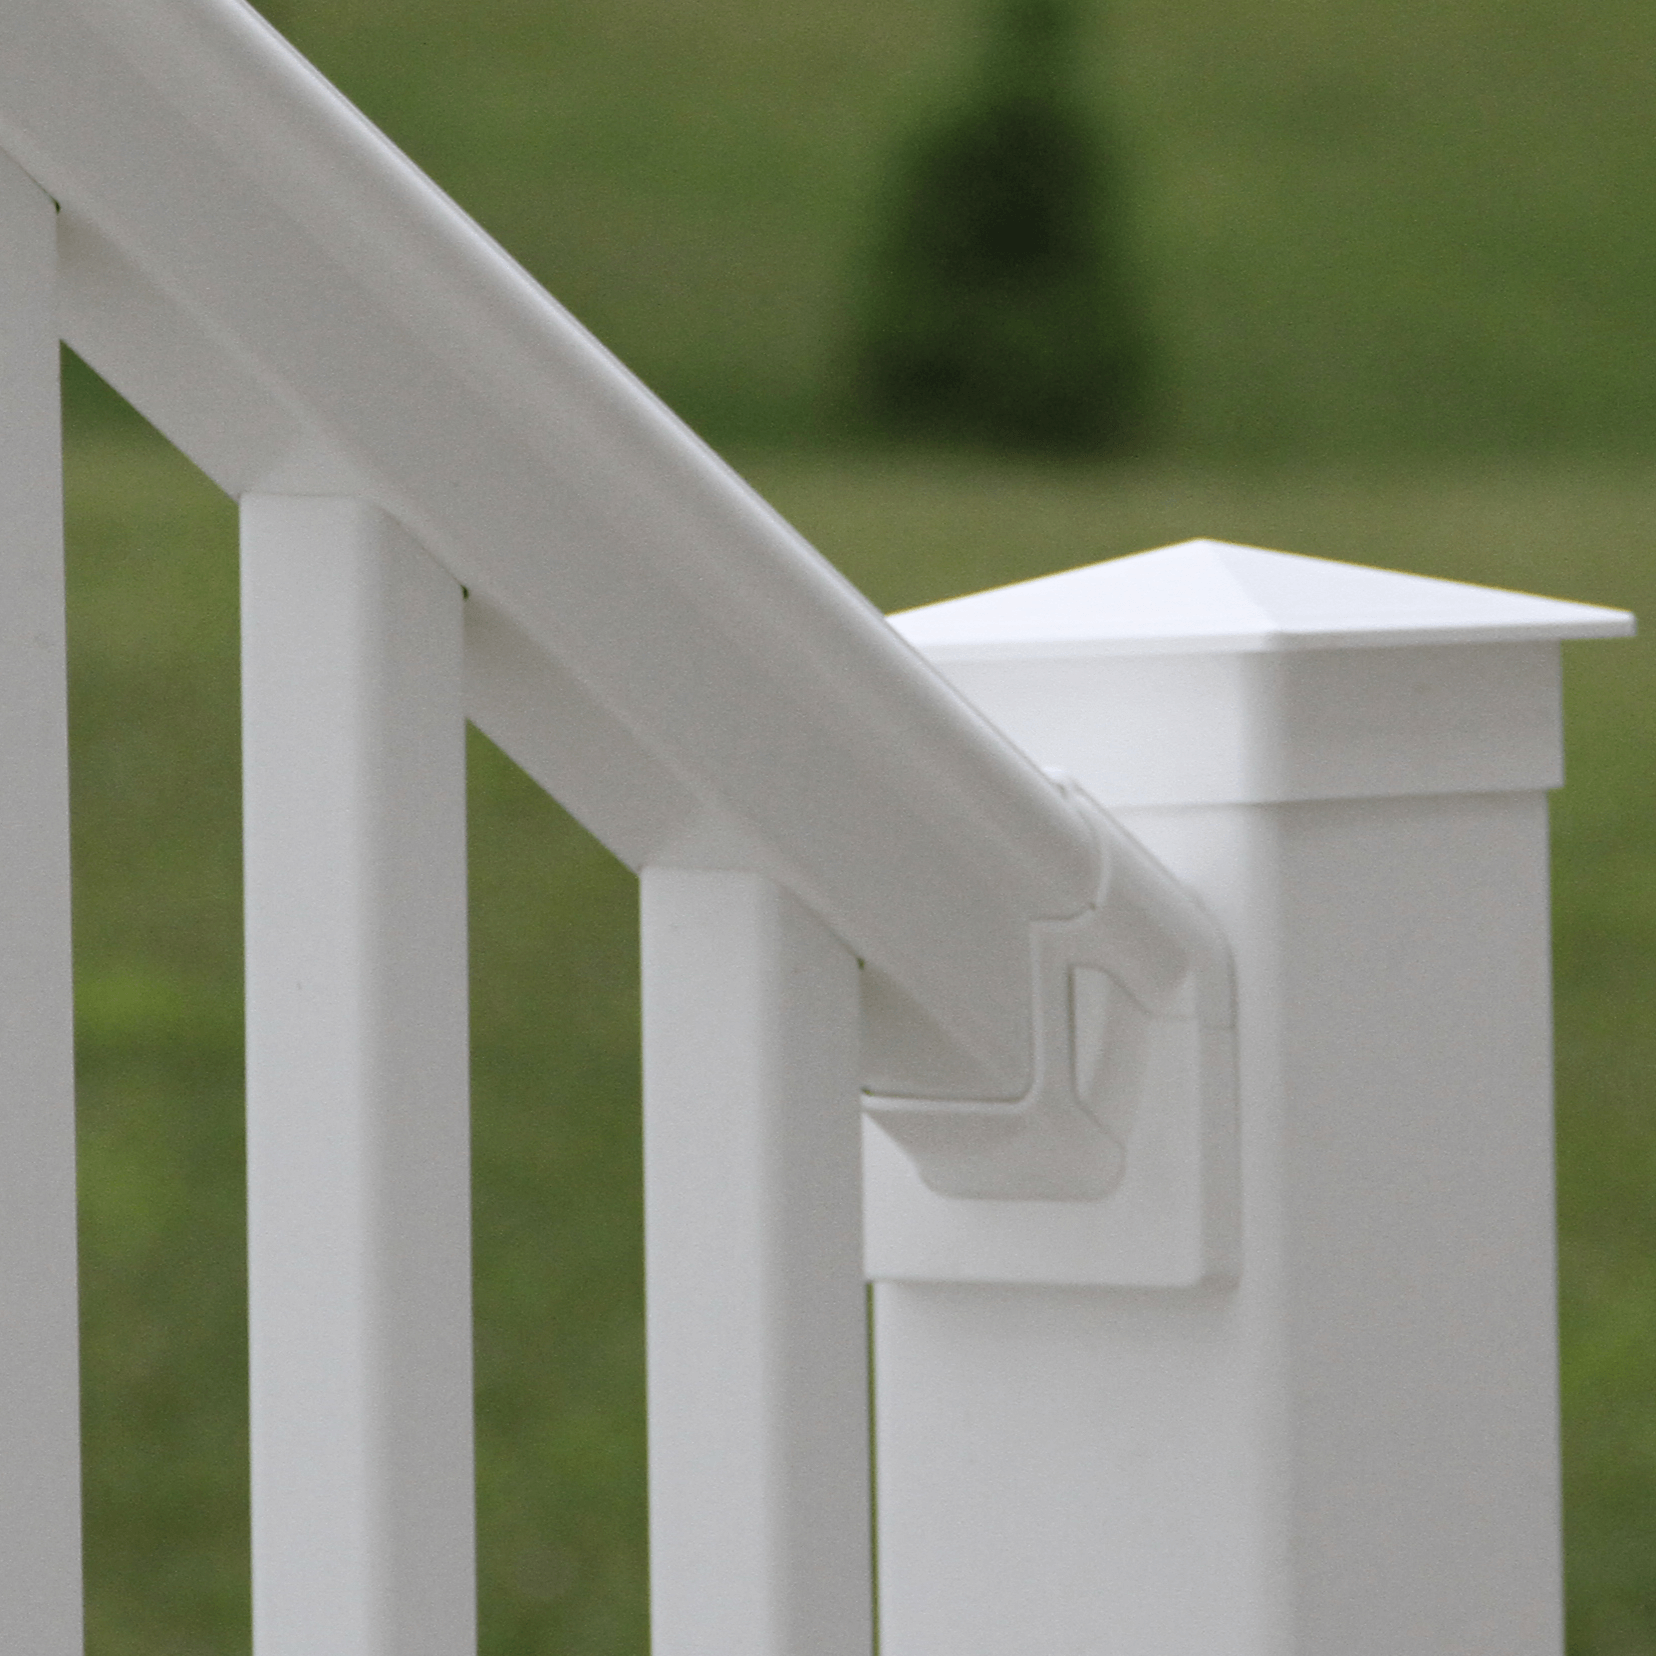 Vinyl Railing Profiles - Superior Plastic Products - 200 Series Vinyl Railing - Superior Plastic Products